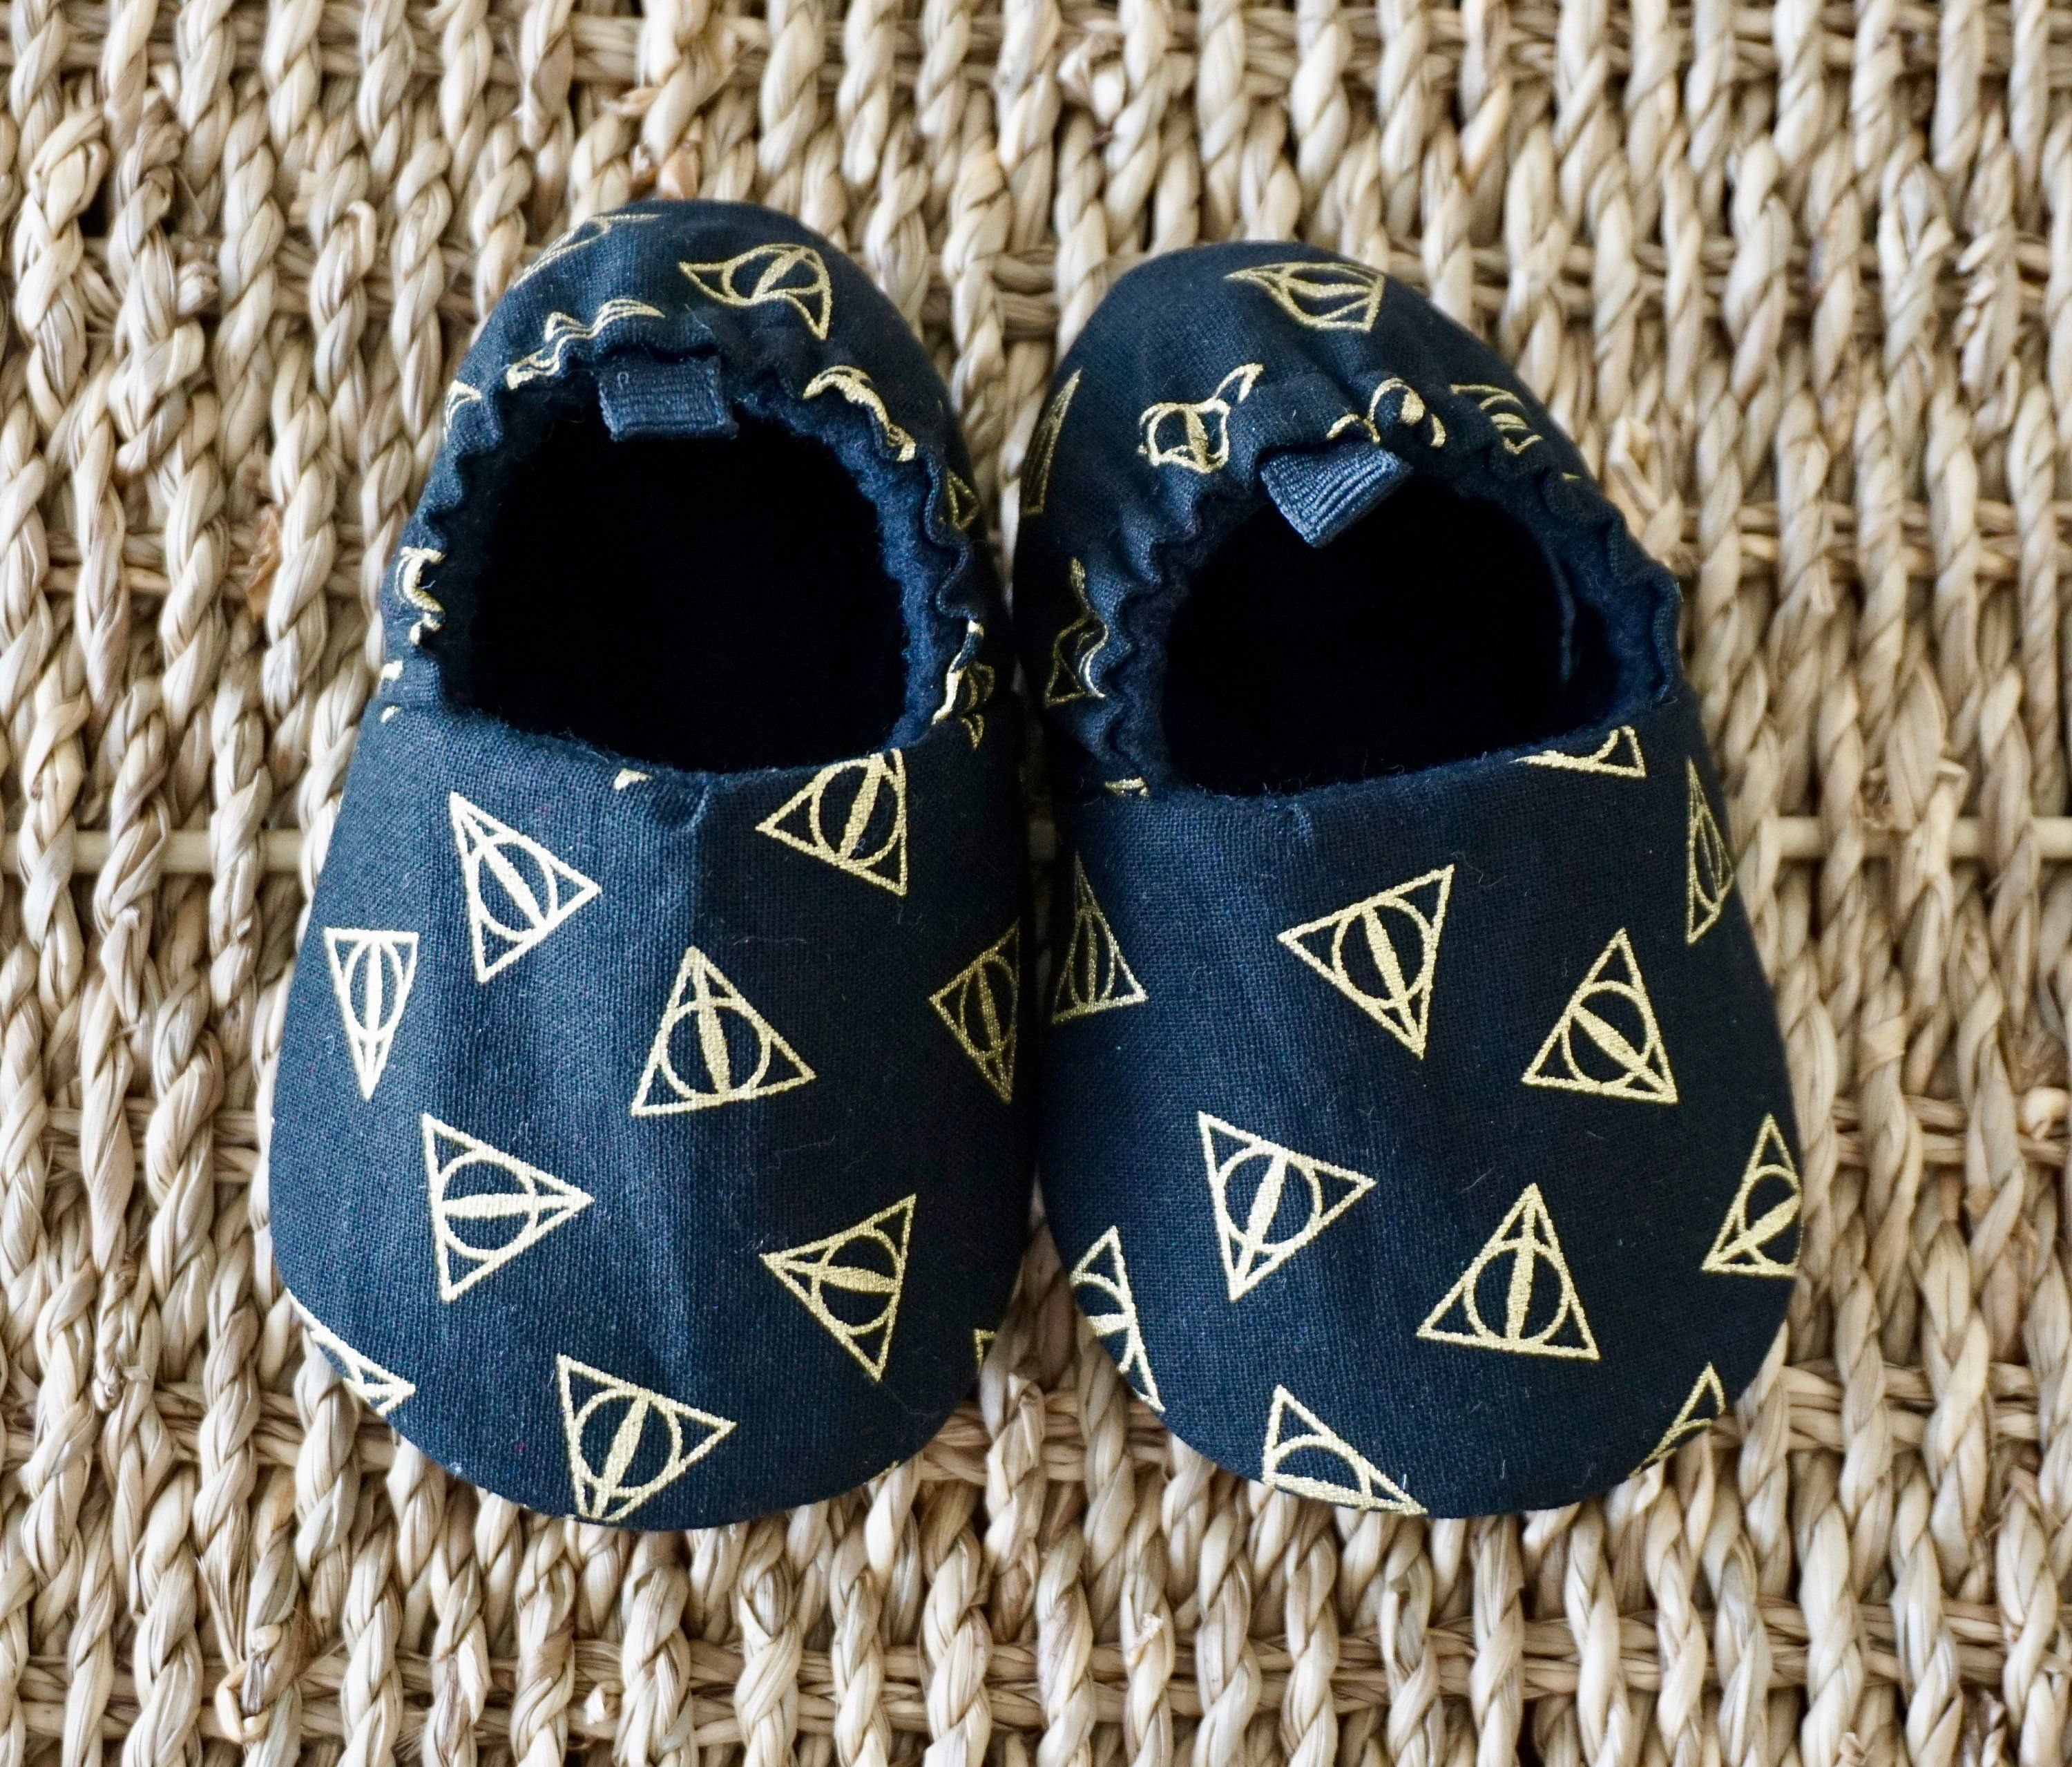 0848fa775 Harry Potter Baby Shoes, Deathly Hallows Shoes, Soft Sole Baby Shoes, Baby  gift, Baby Shower Gift, Baby Moccs, Baby Slippers, Toddler Shoes by ...